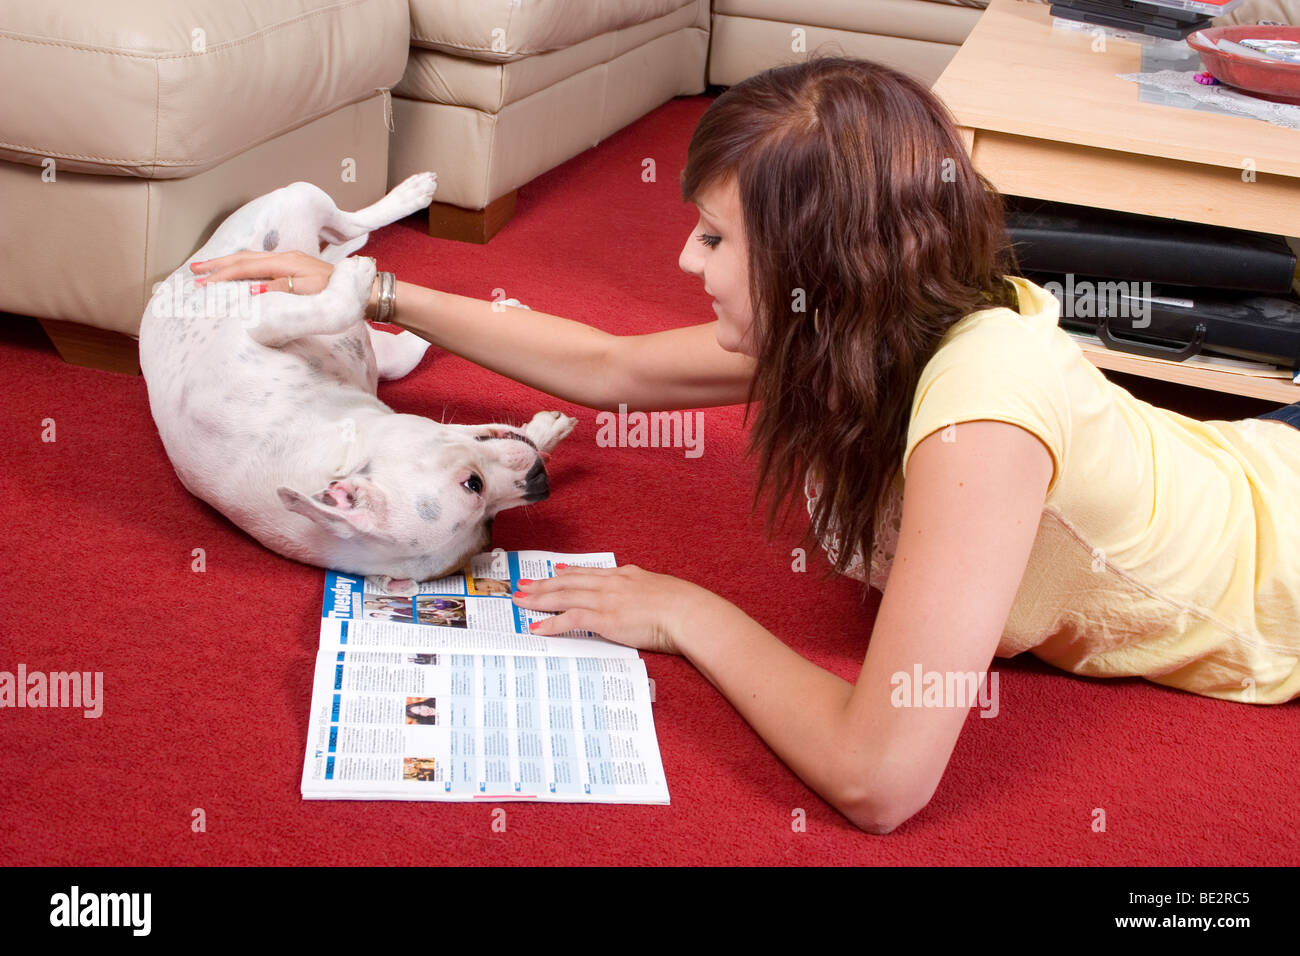 teenage girl playing with staffordshire bull terrier dog while reading magazine - Stock Image